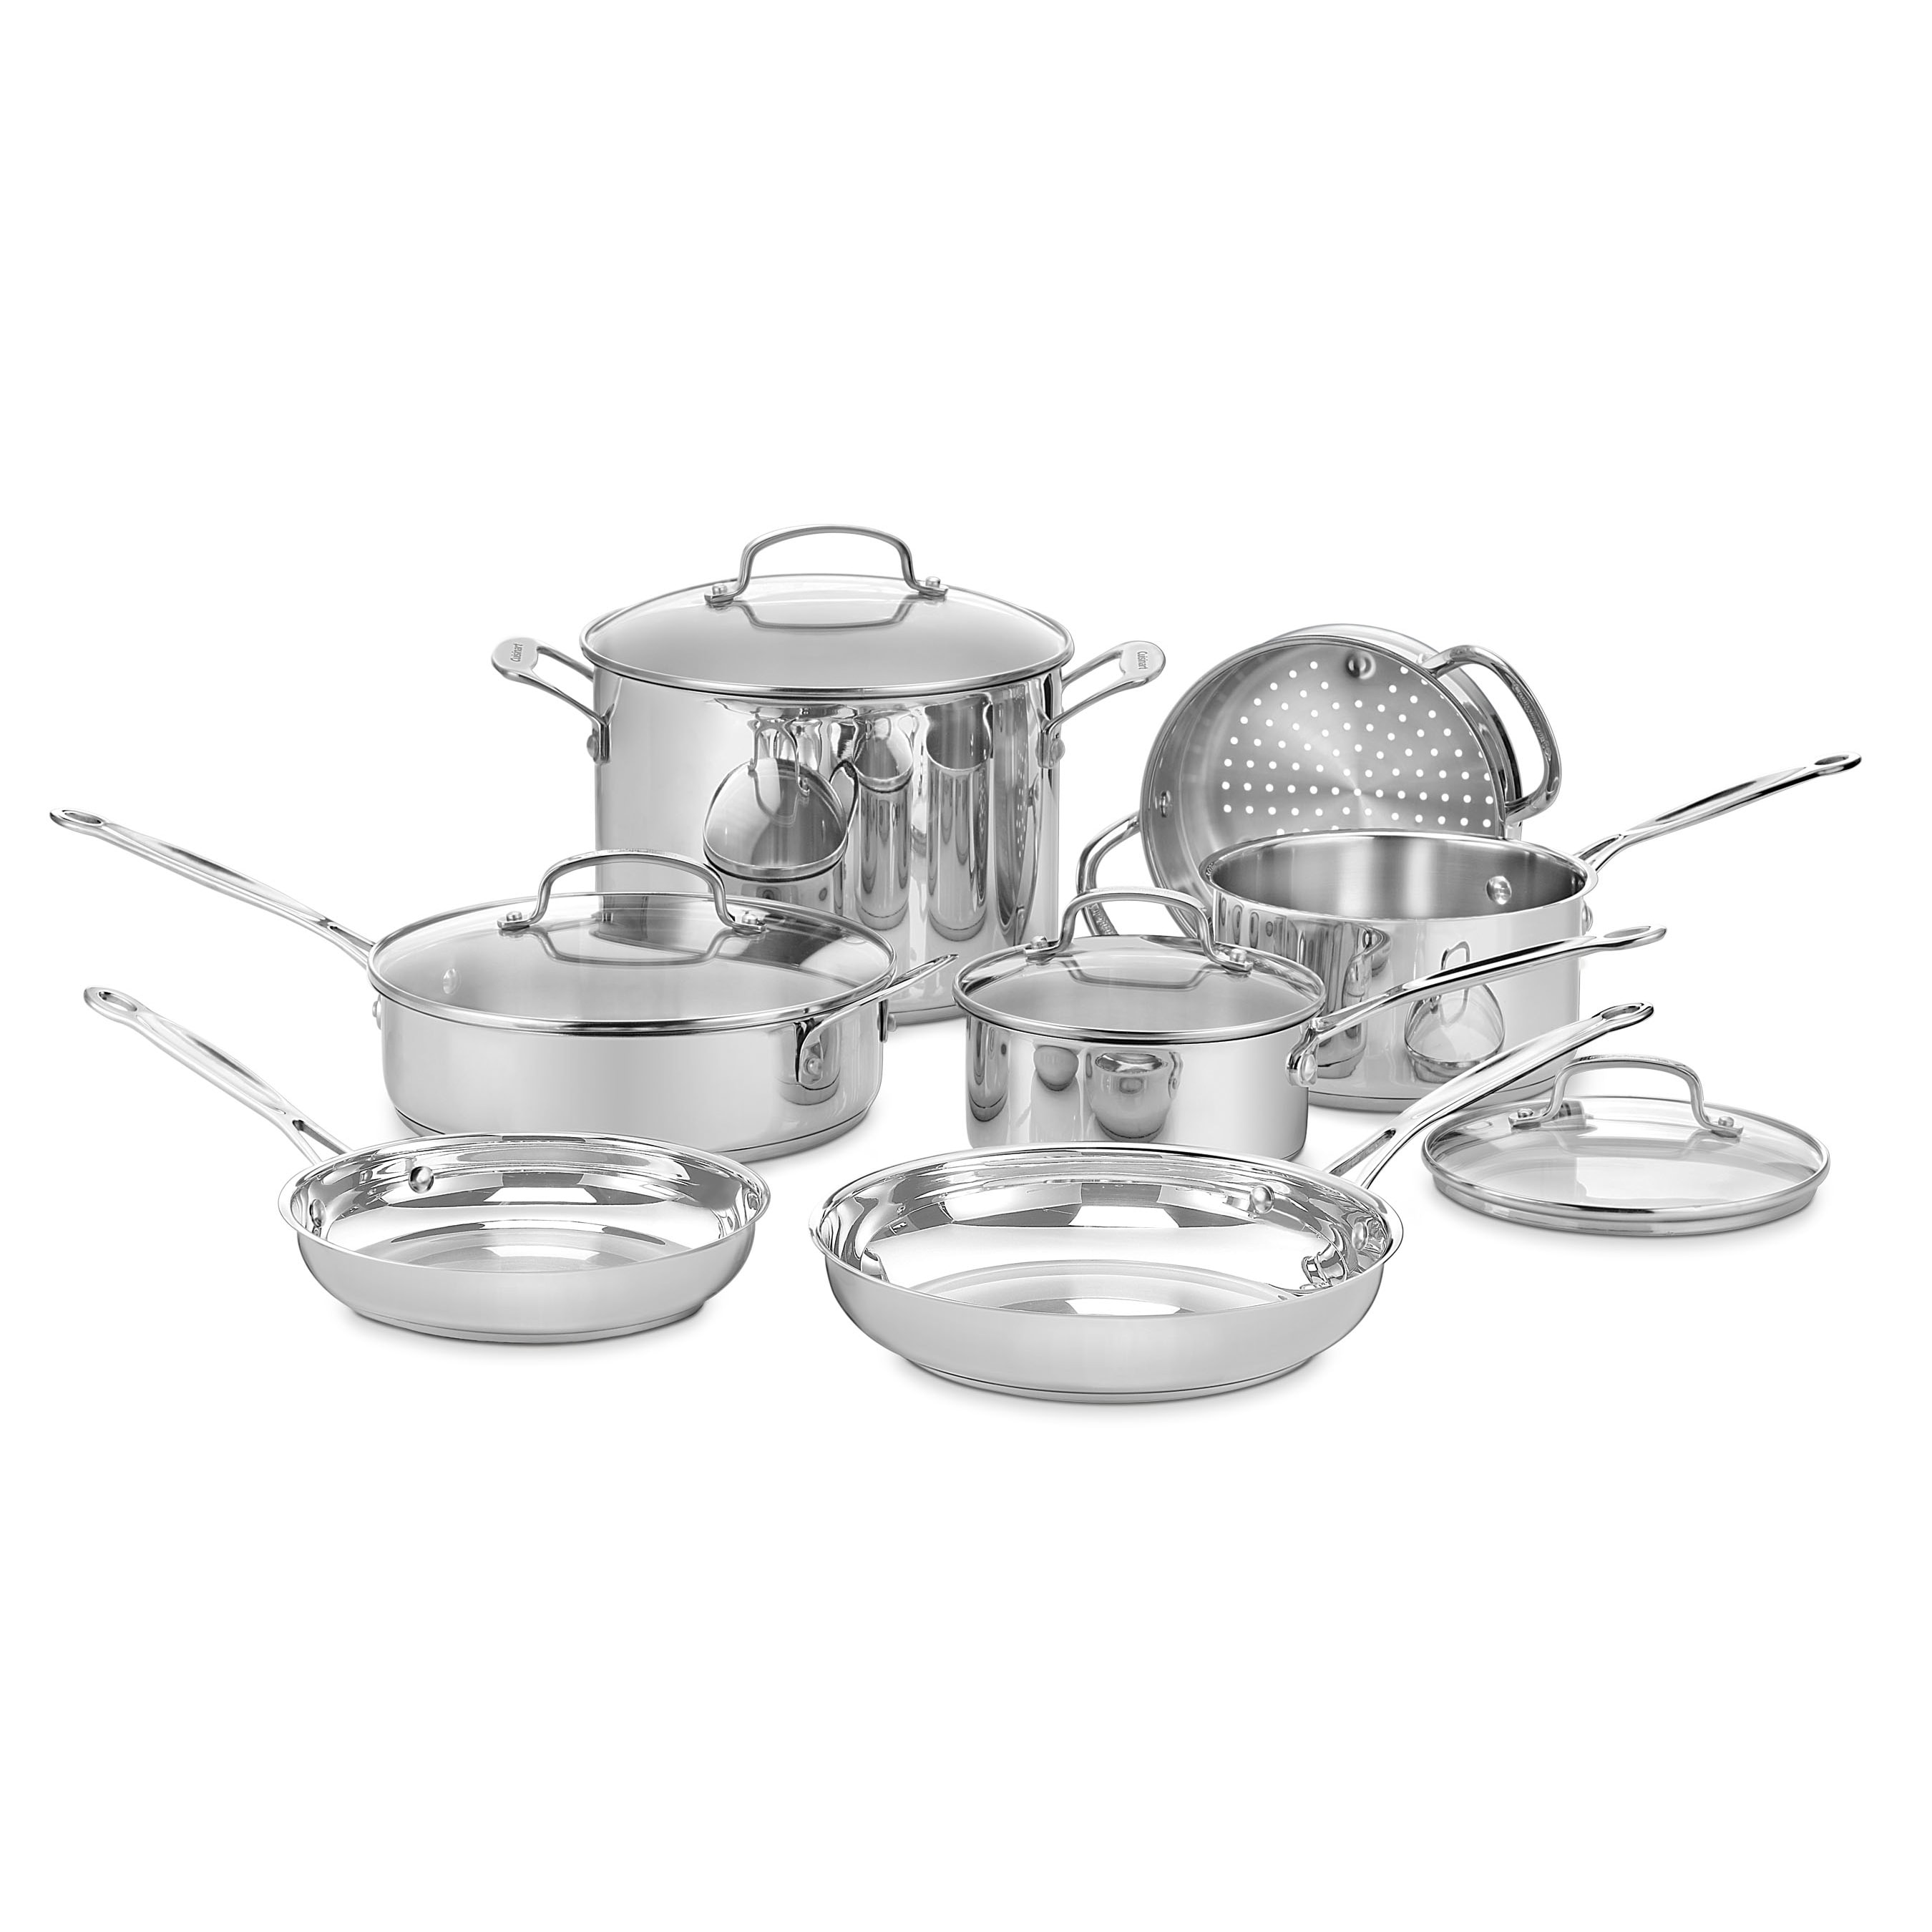 Chefs classic stainless 11 piece cookware set pans pots kitchen pan pc